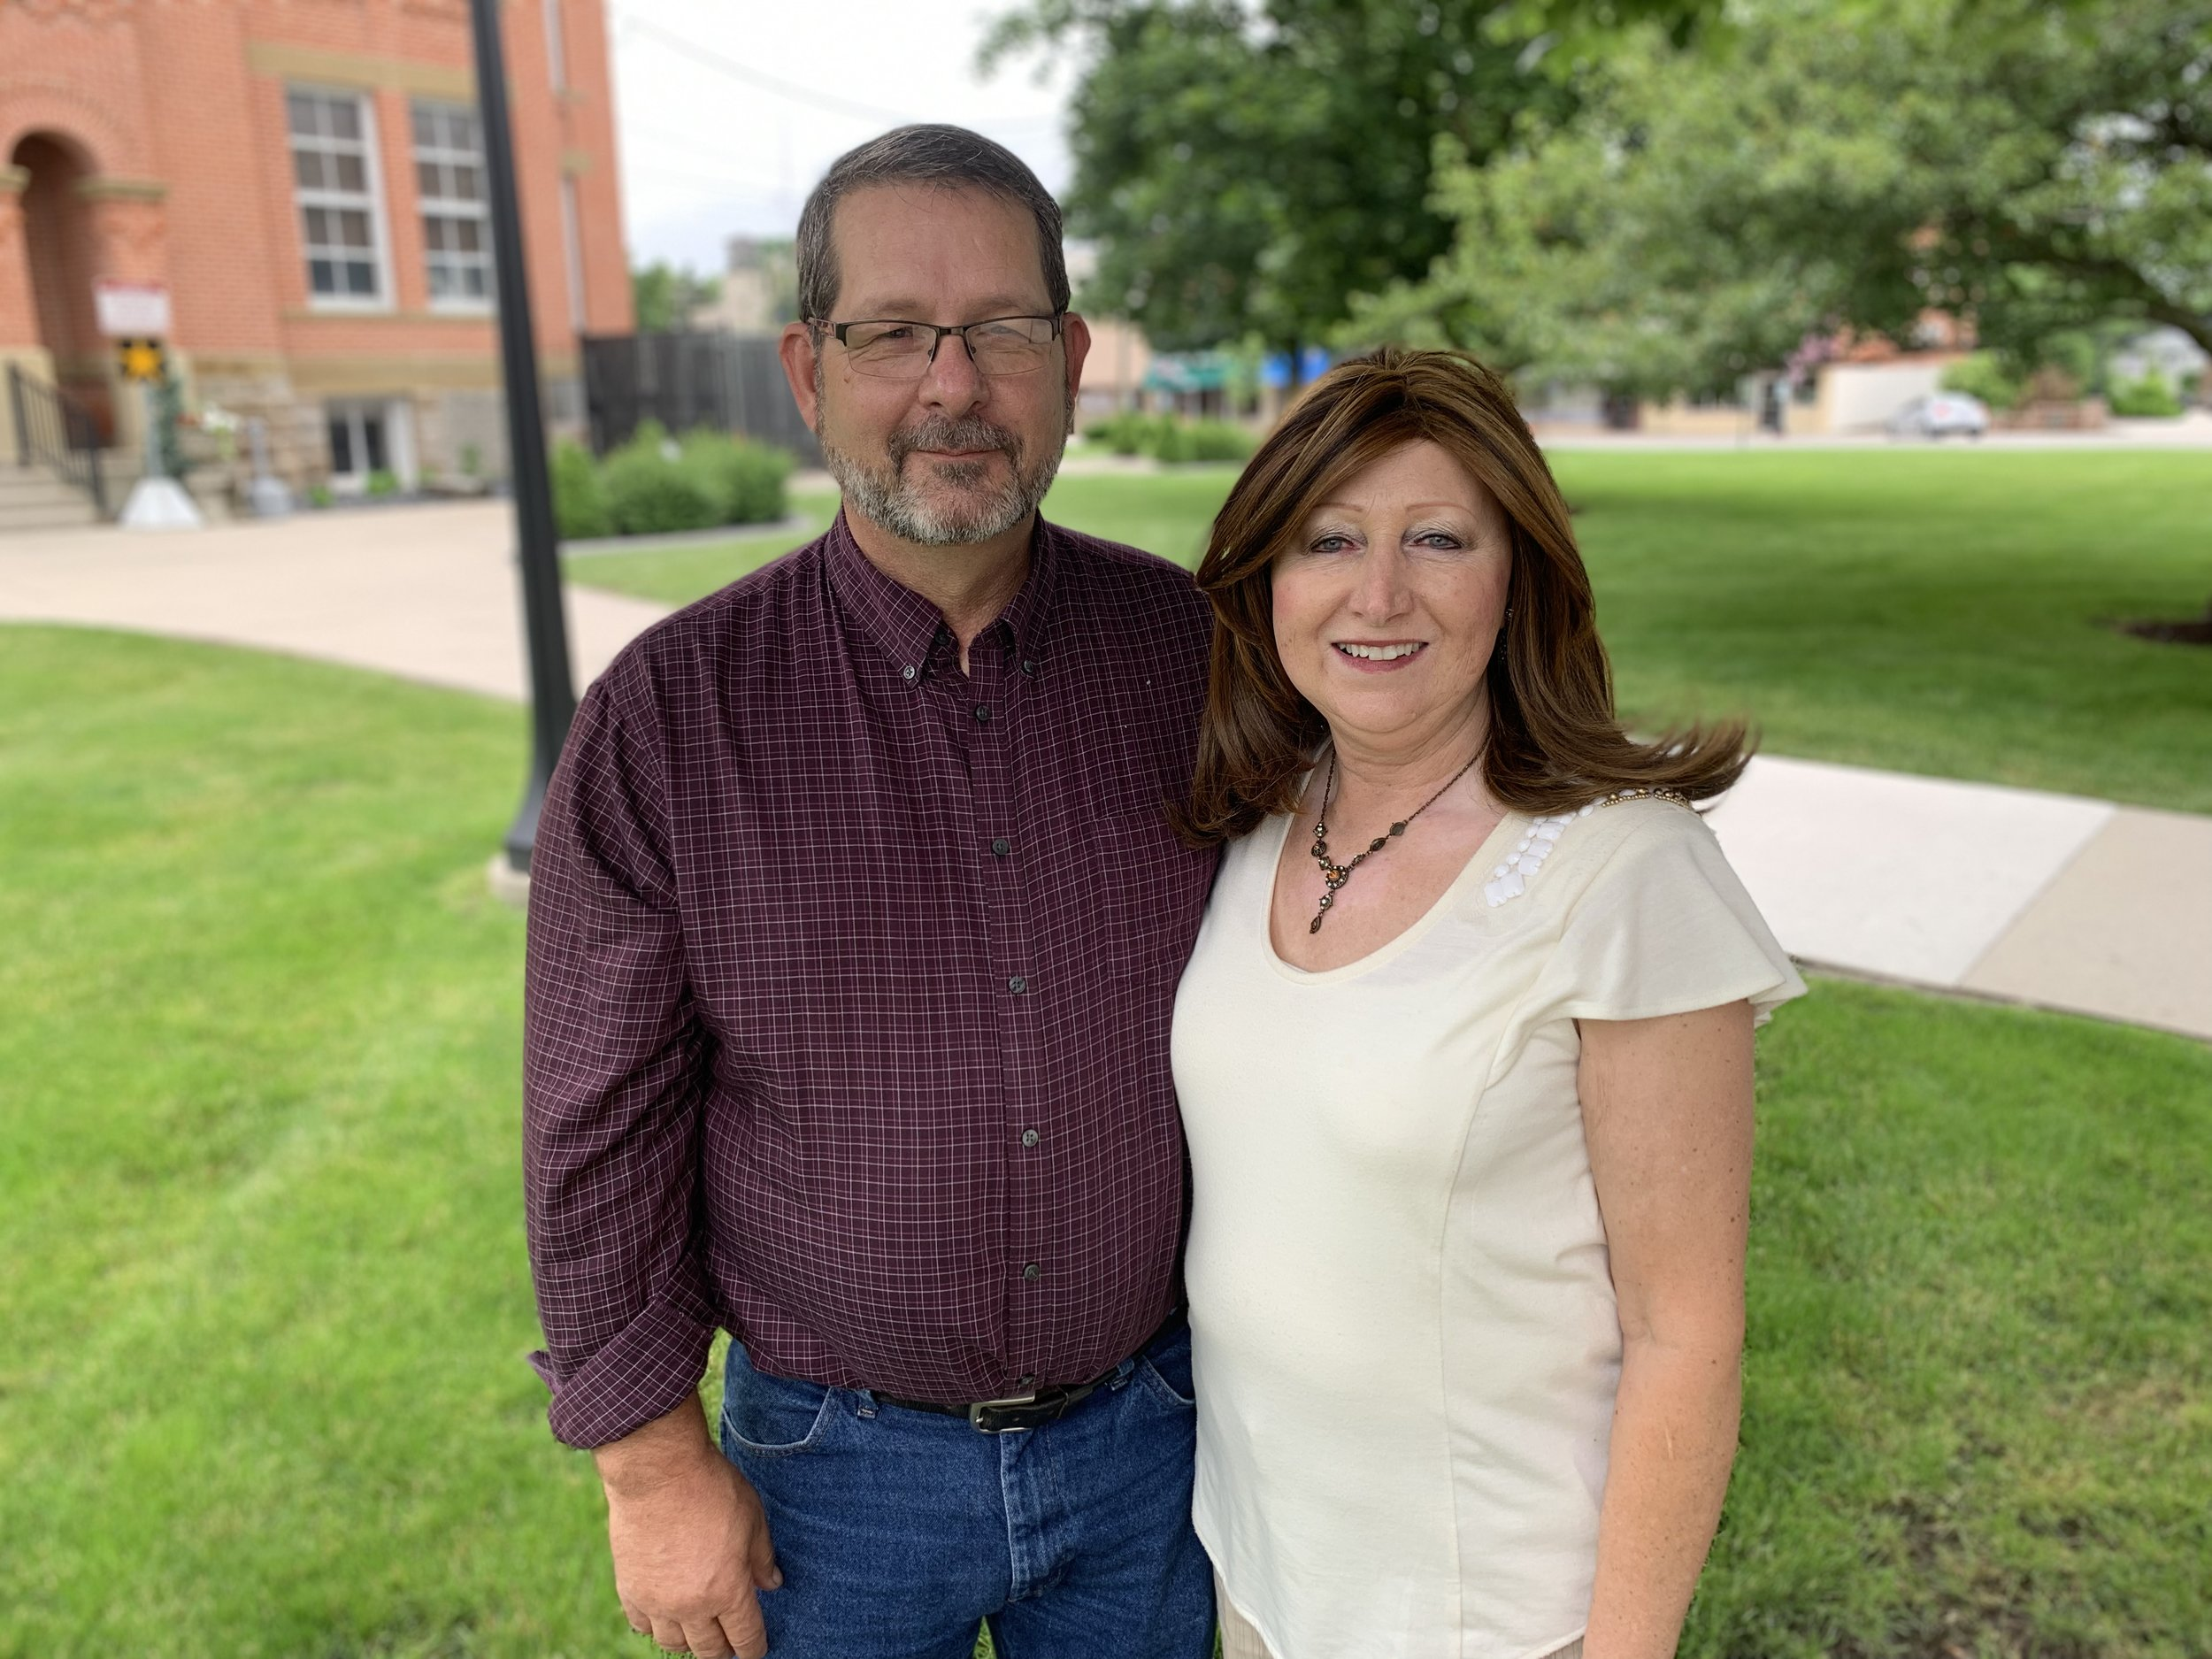 Elder: - Richard KippRichard and his wife Olga have a deep love for Paulding and have lived here for over 14 years. Together they serve various roles at Branch such as the singing and doing sound for the worship team. They love being outside, wood-working and spending time with their family.